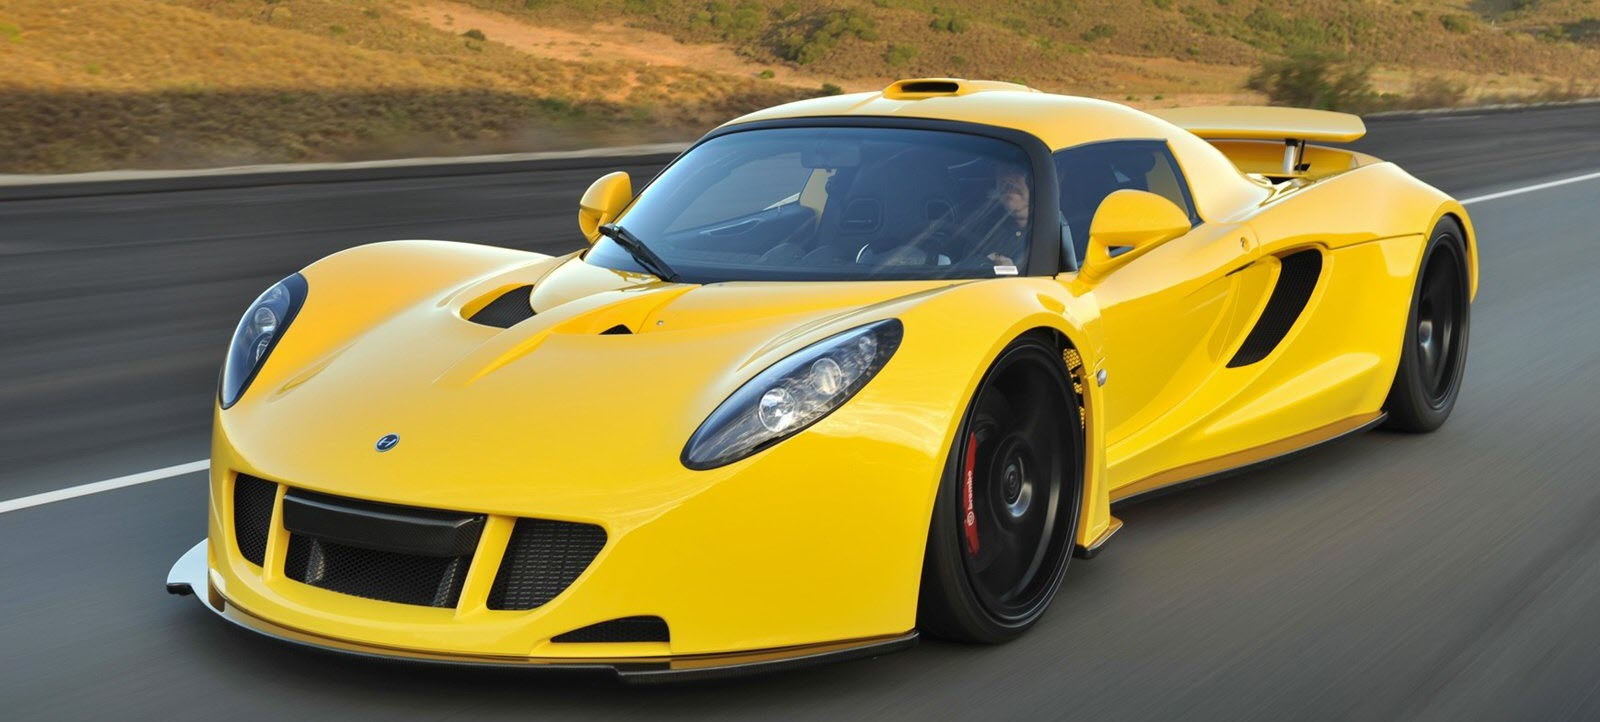 Hennessey Venom GT | Guiness World Record Holder!